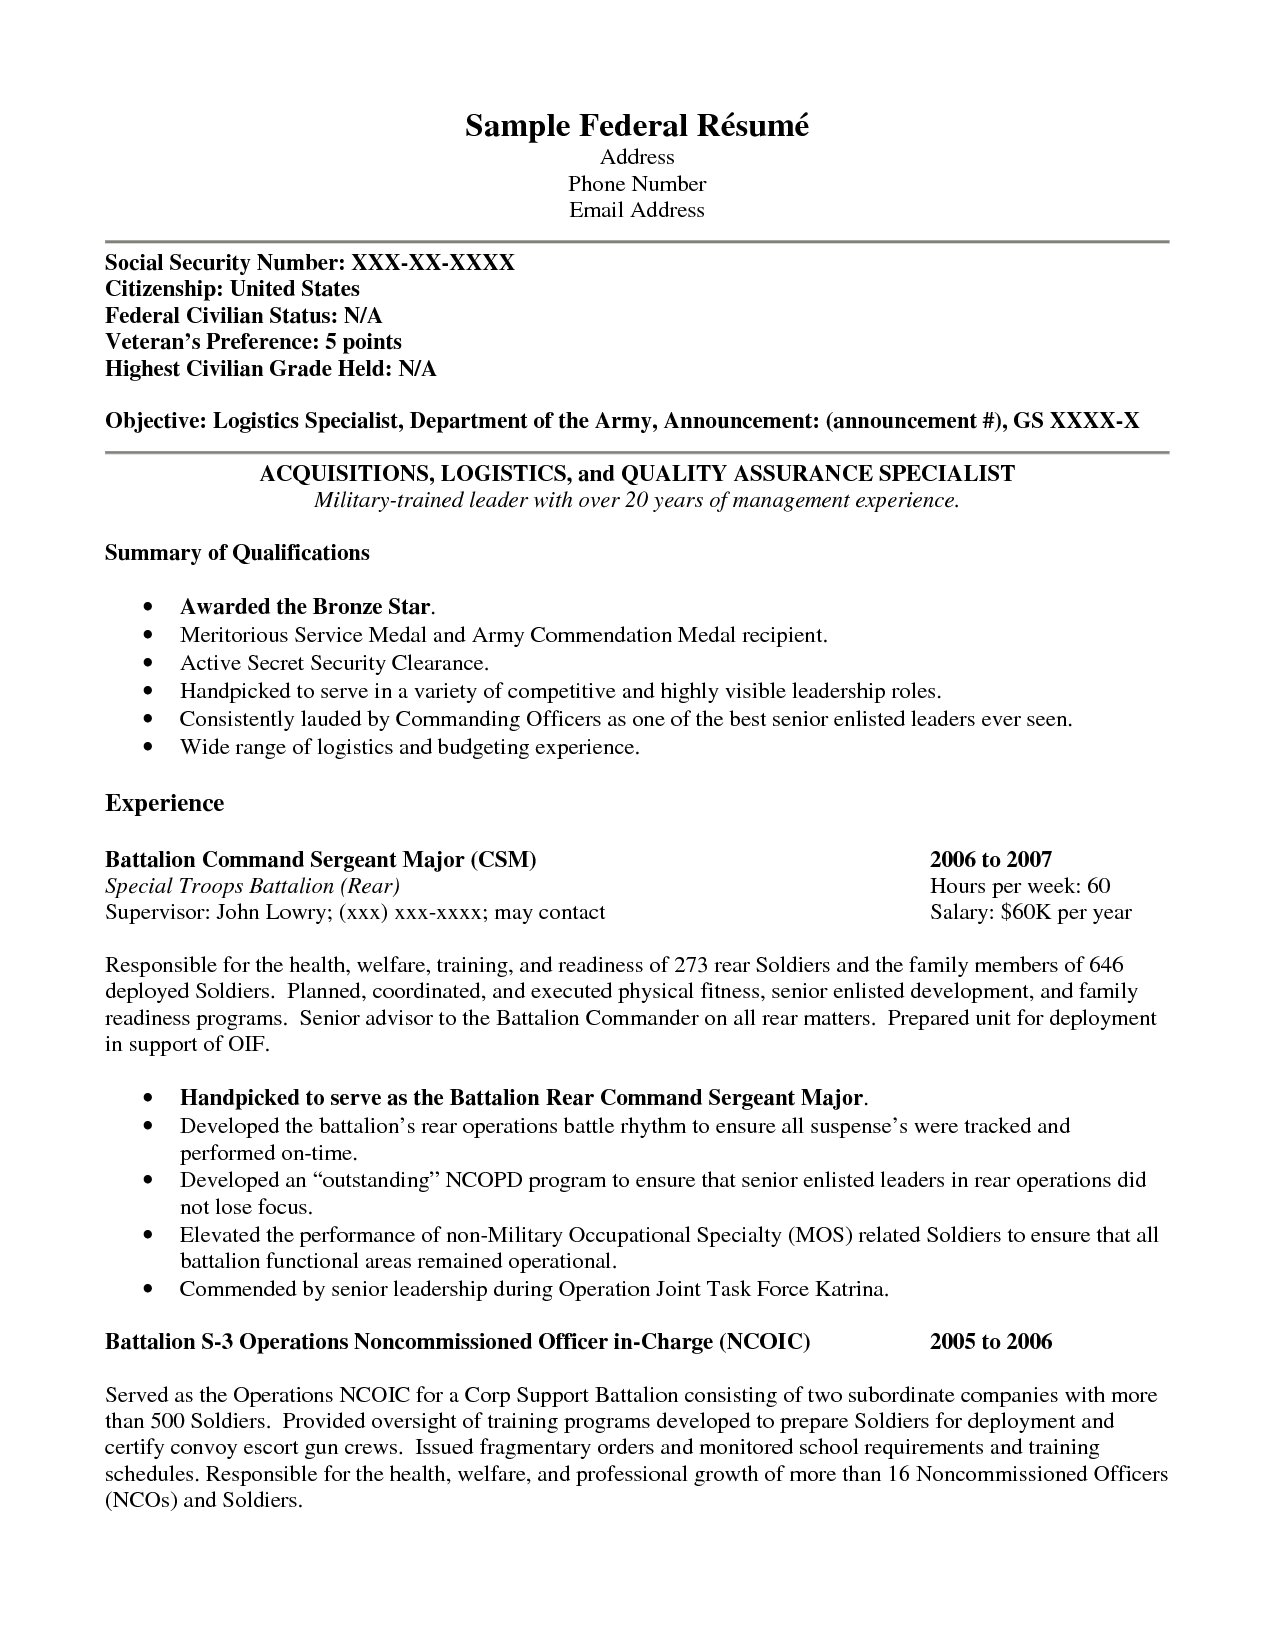 Free Military Resume Builder Templates And Service For Veterans Veteran  Template How Write Logistics Specialist Army  Veteran Resume